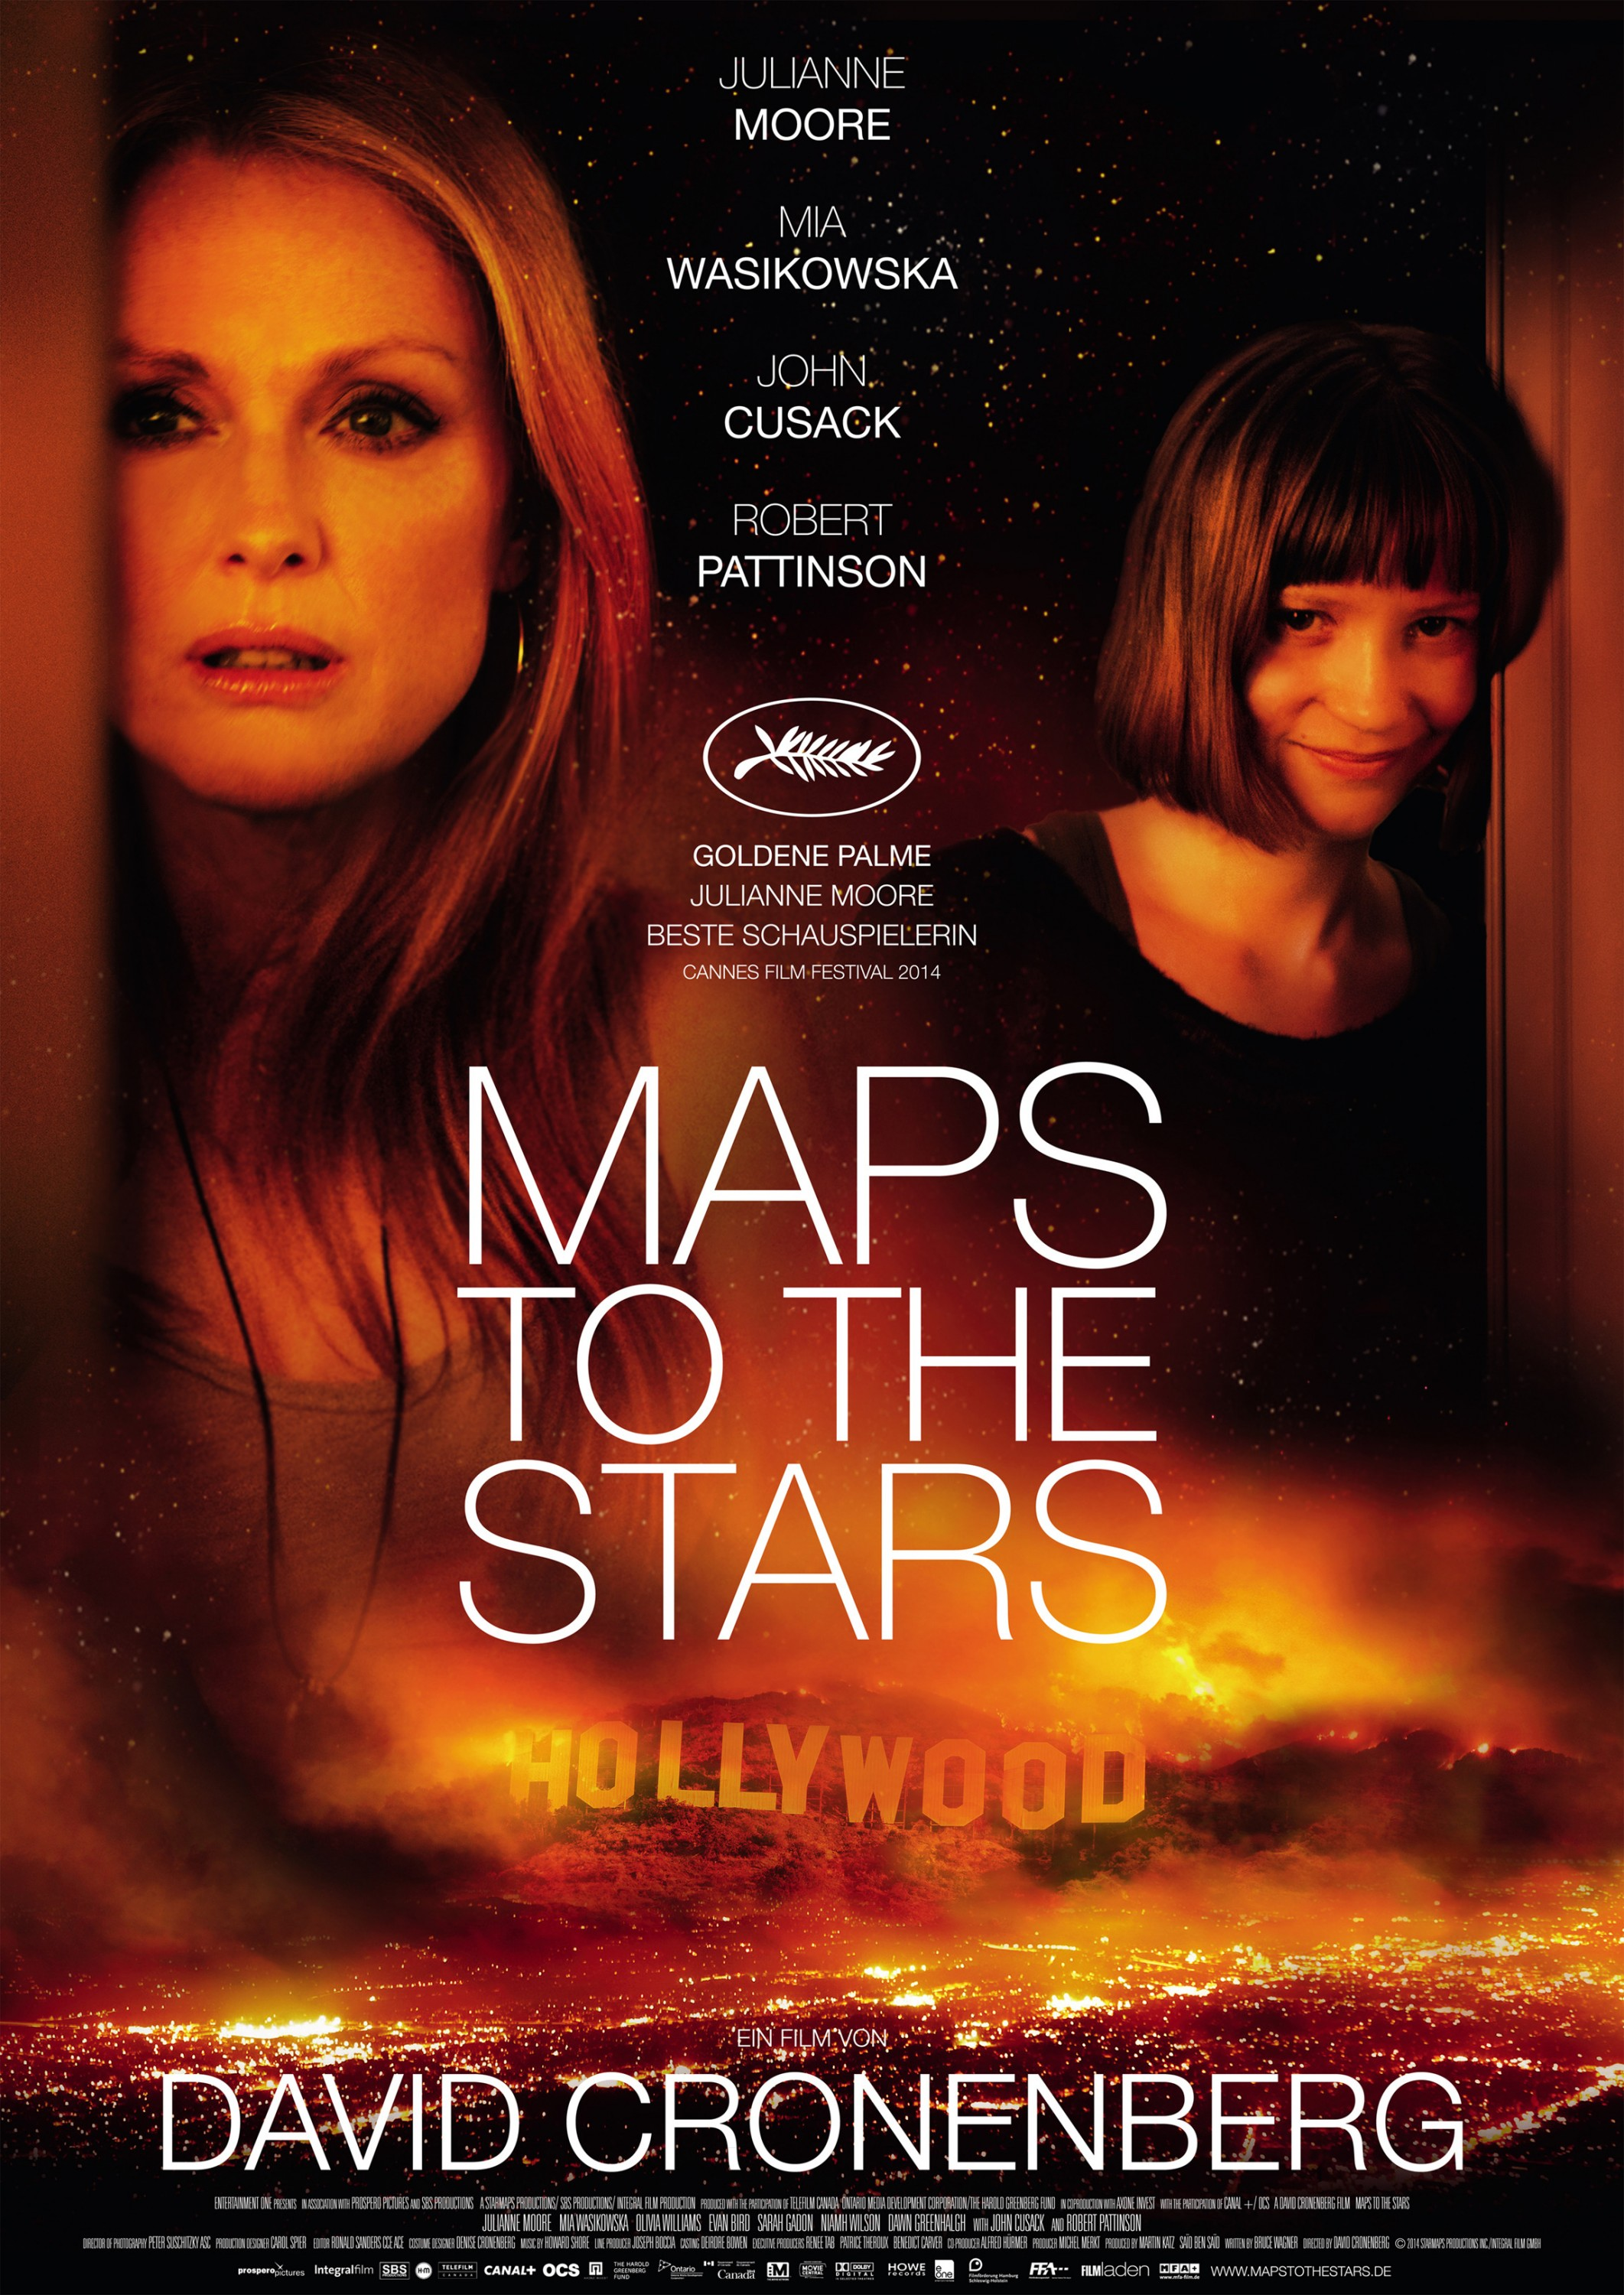 Maps to the Stars-Official Poster Banner PROMO XXLG-15AGOSTO2014-02